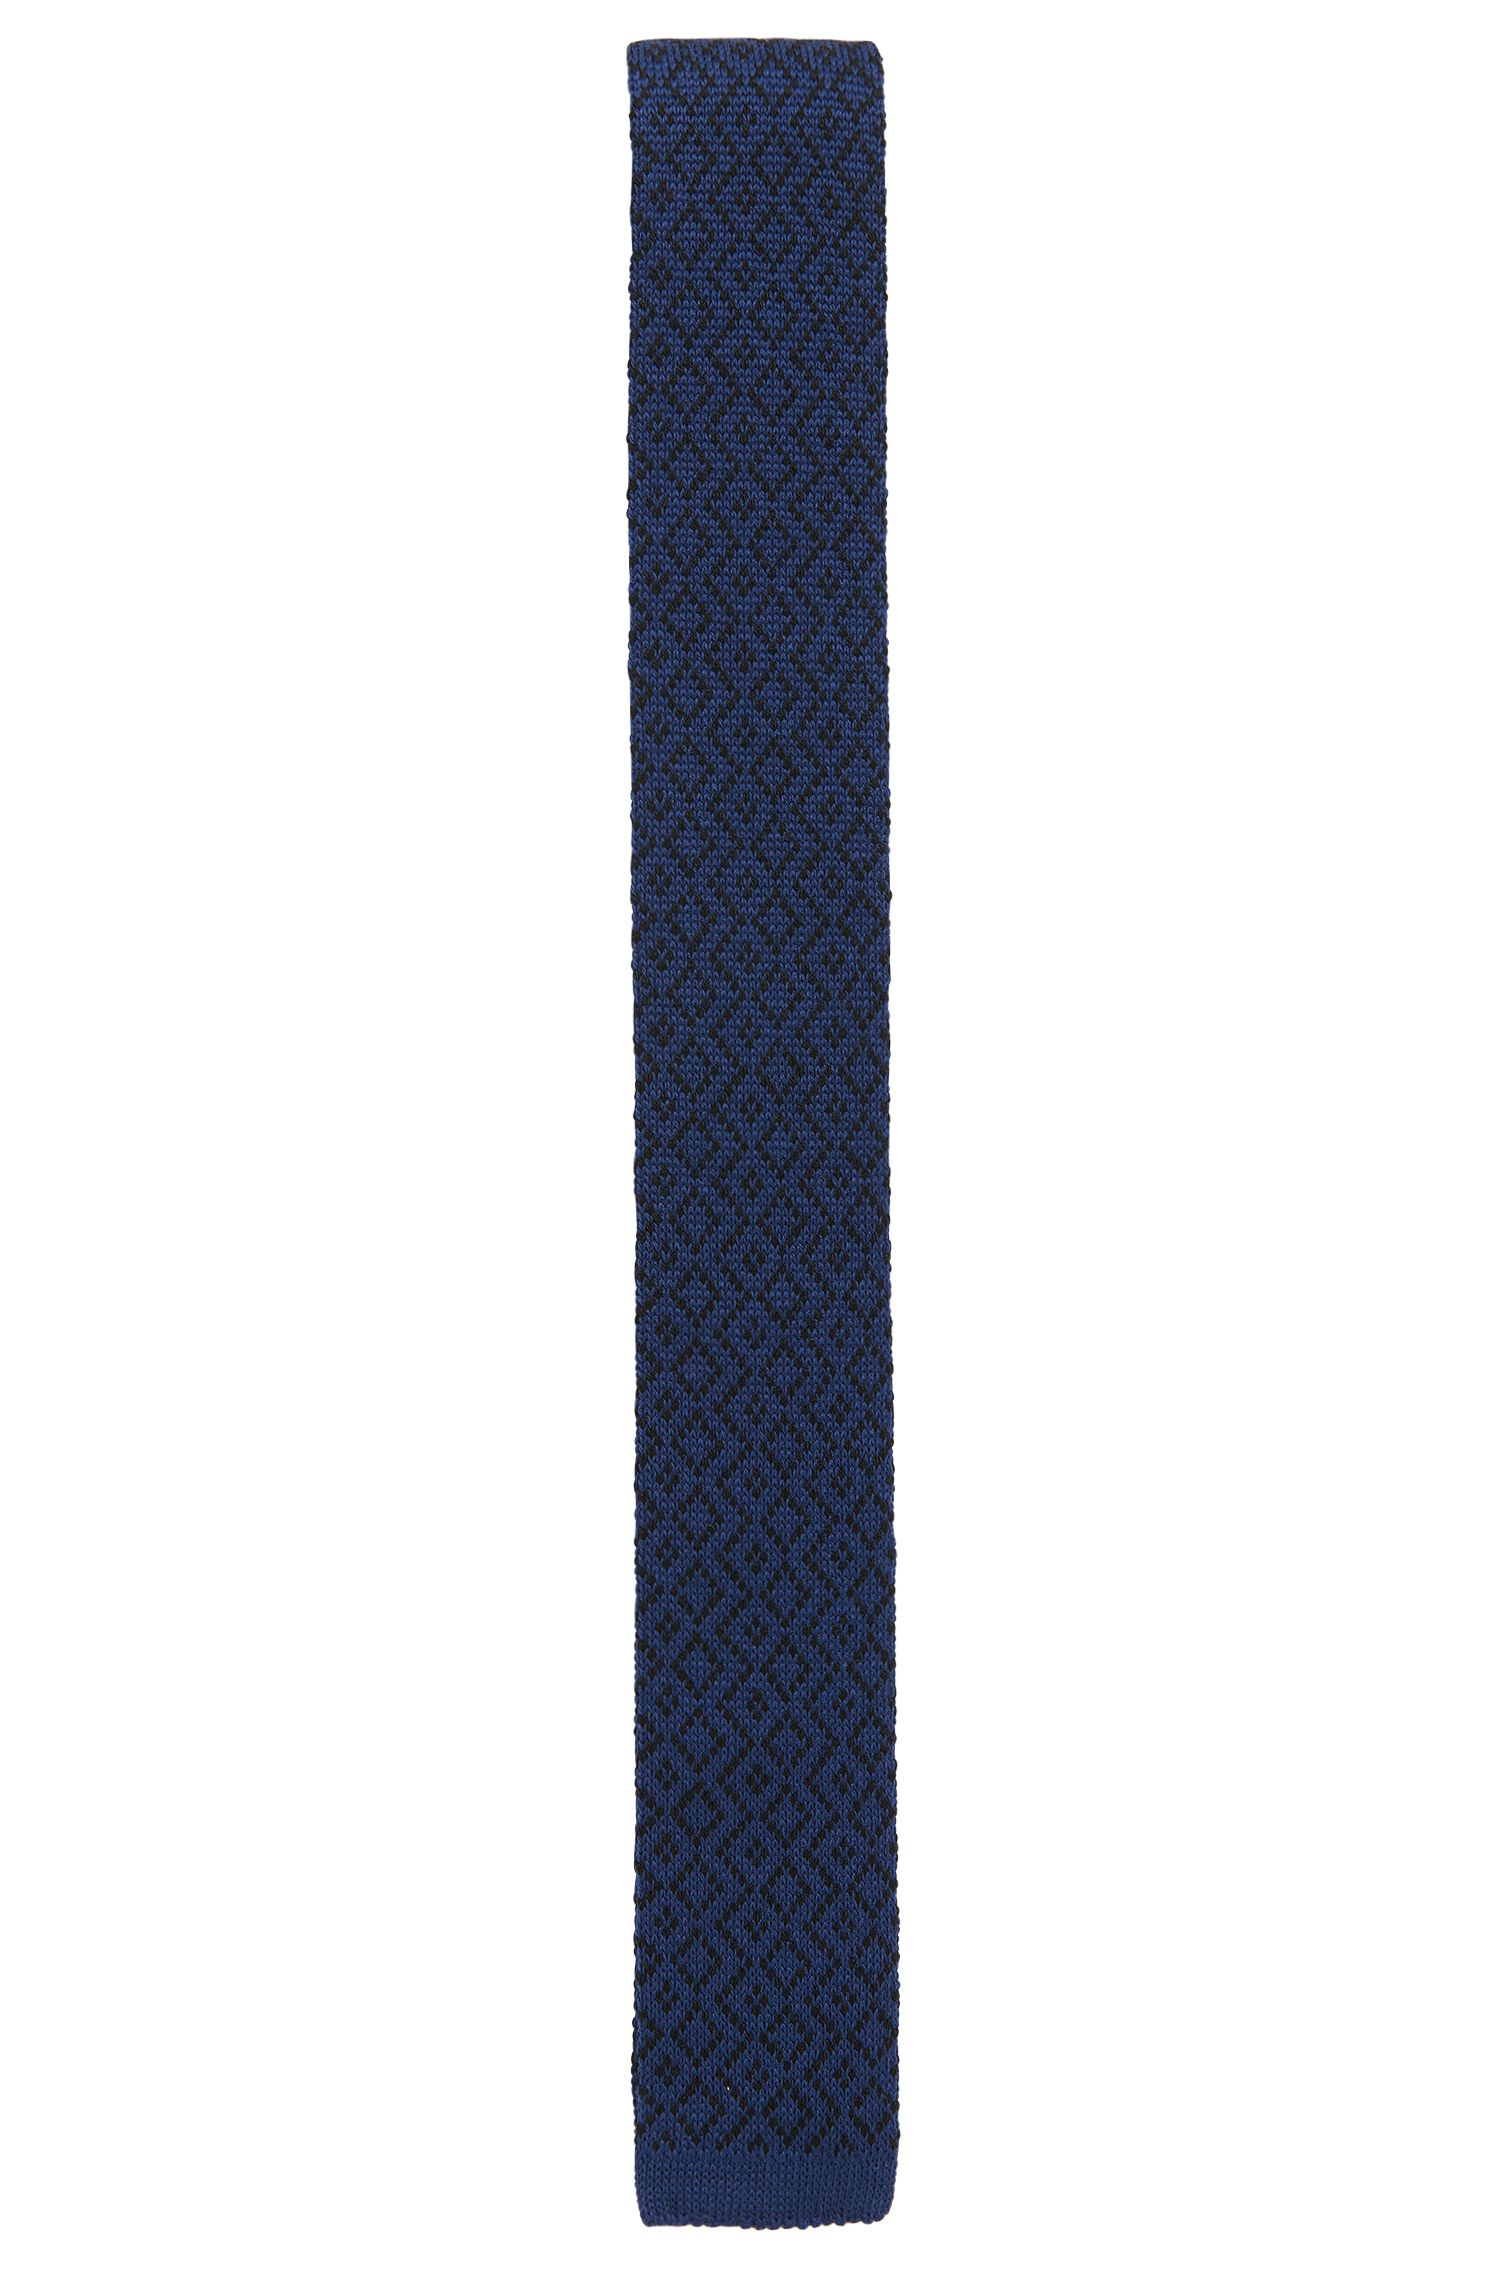 Geometric Wool Knit Skinny Tie